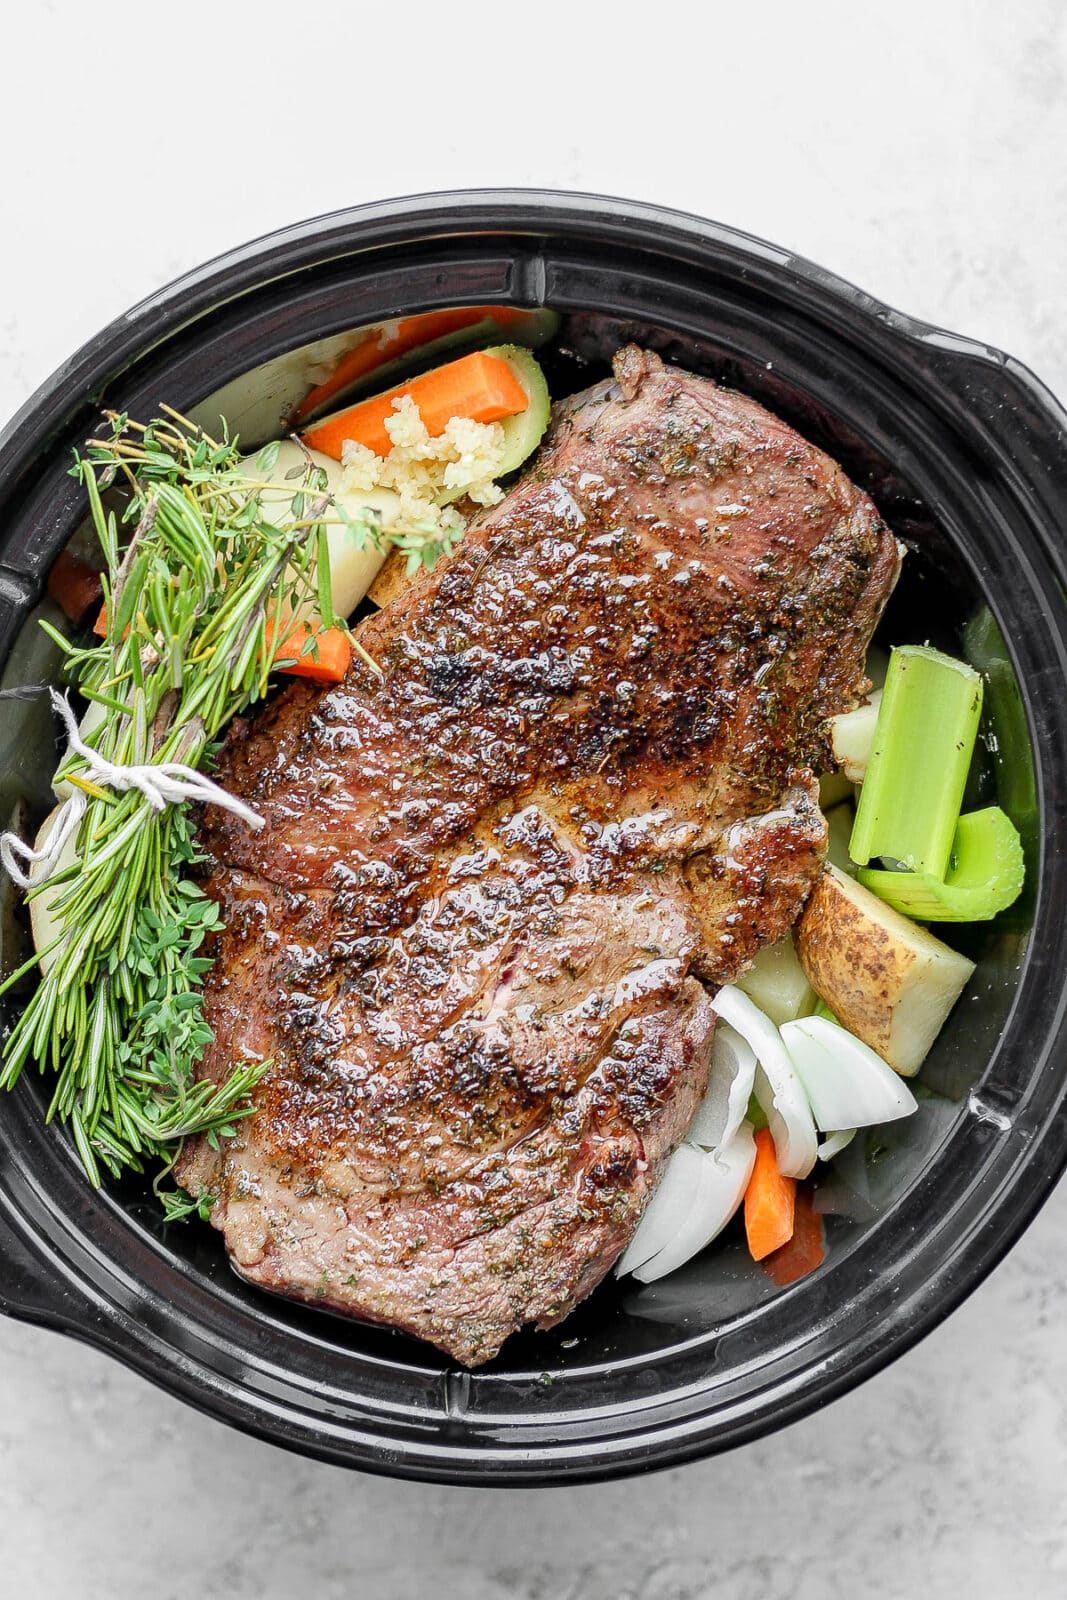 Slow cooker with beef roast, vegetables, and herbs.